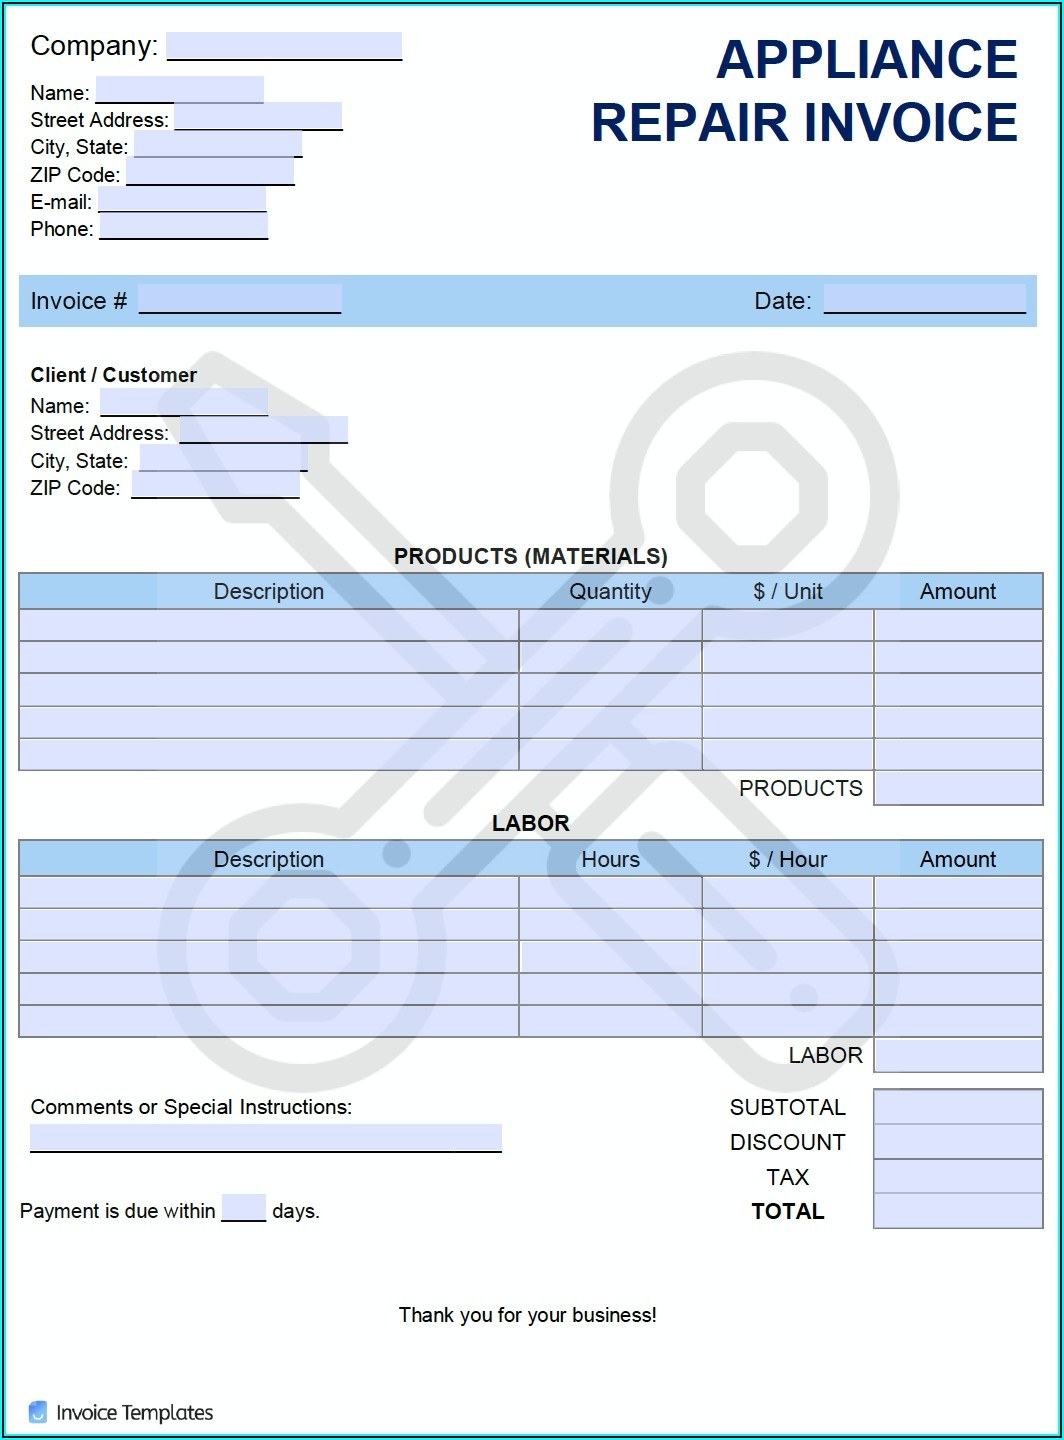 Free Appliance Repair Invoice Template